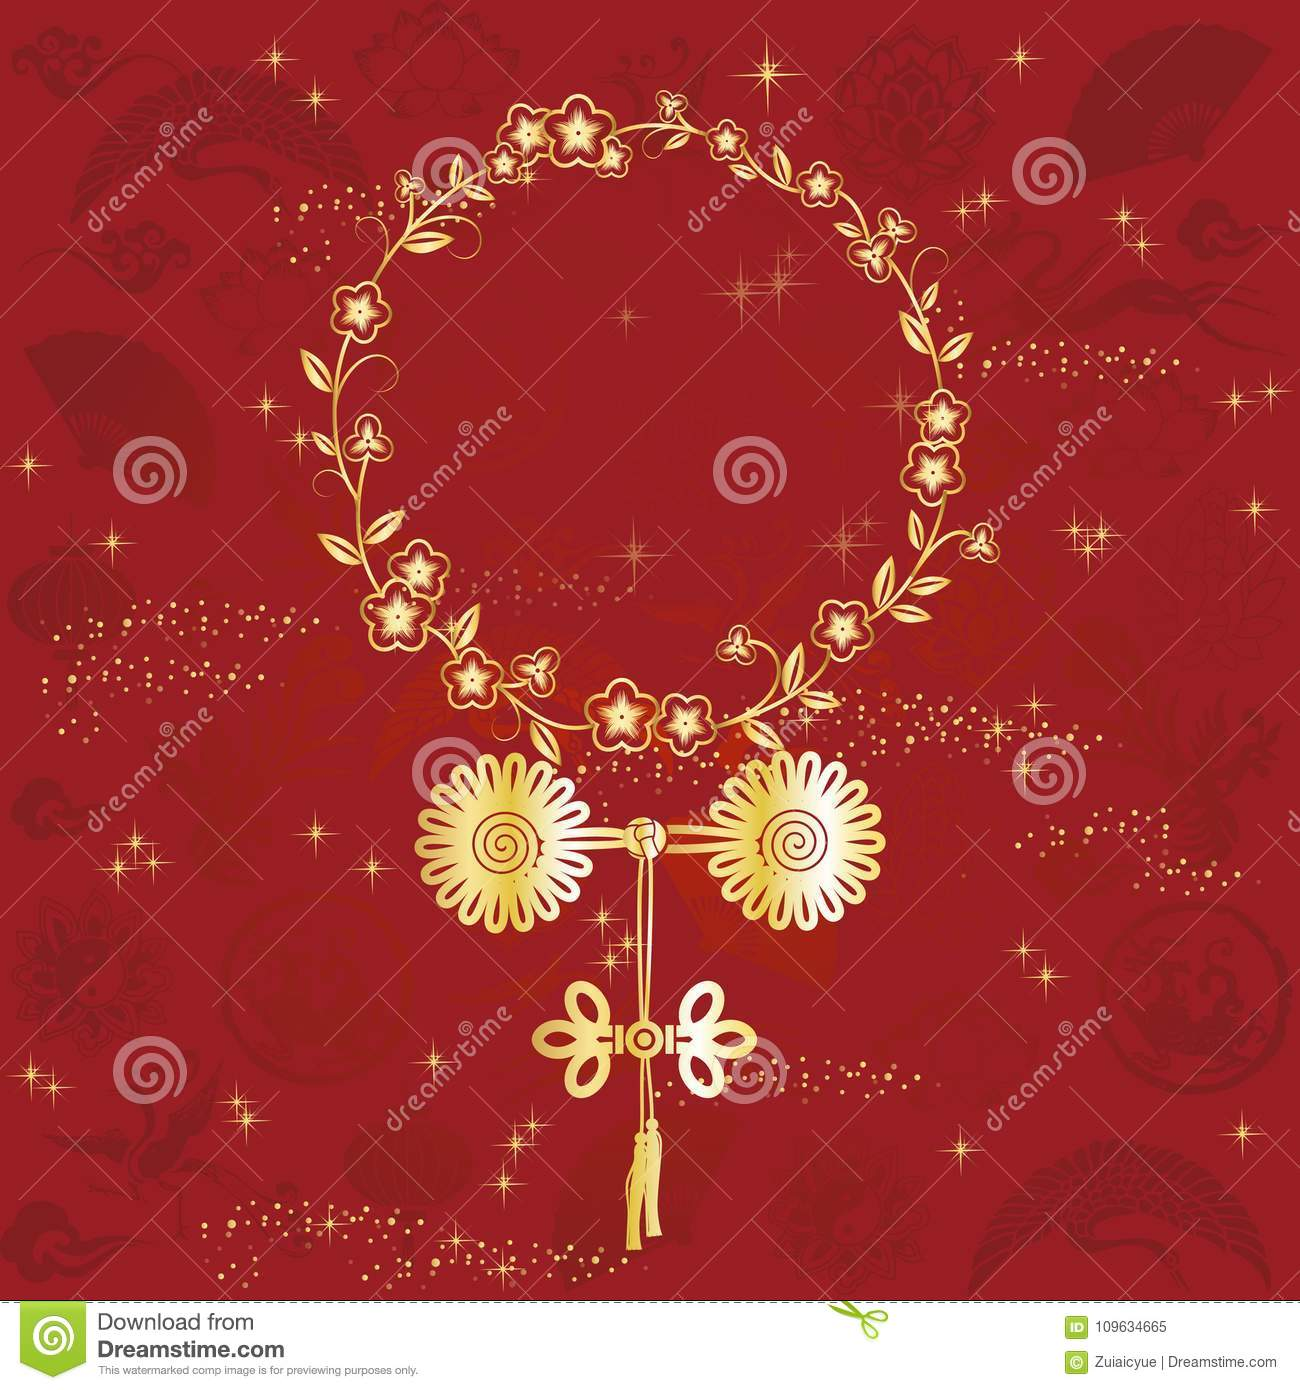 Holiday Greeting Cards With Chinese Knot Stock Vector Illustration